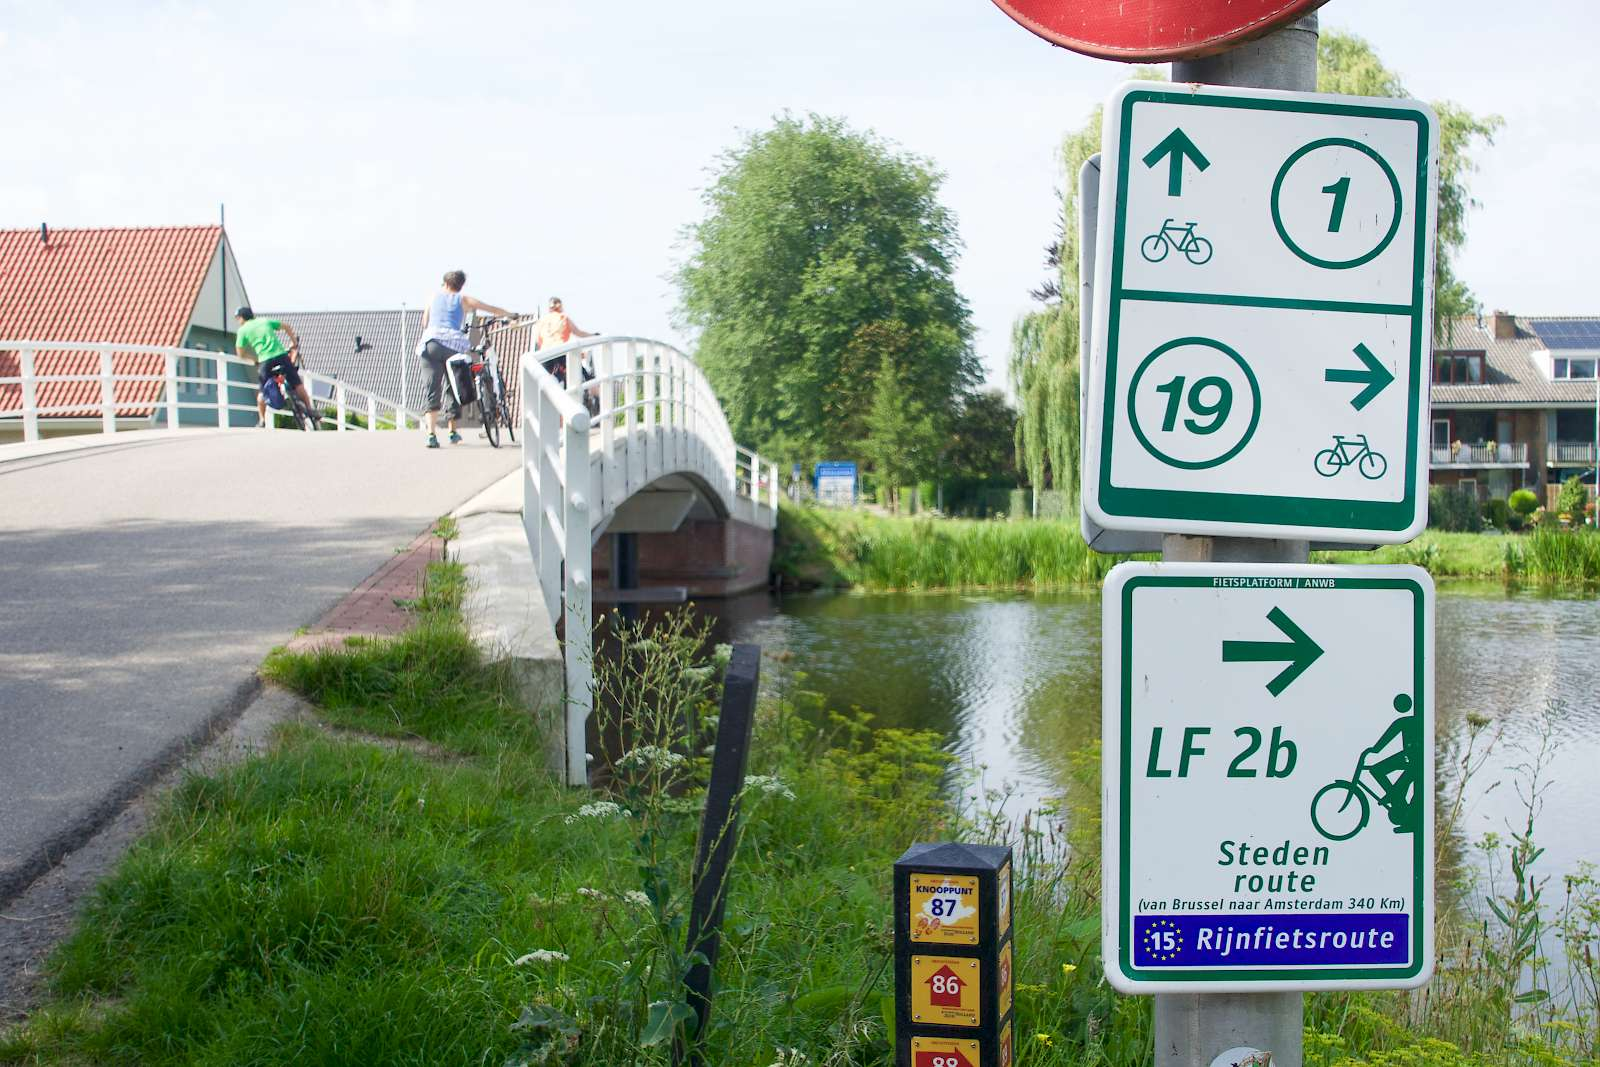 Wayfinding signs along the bike paths in Holland